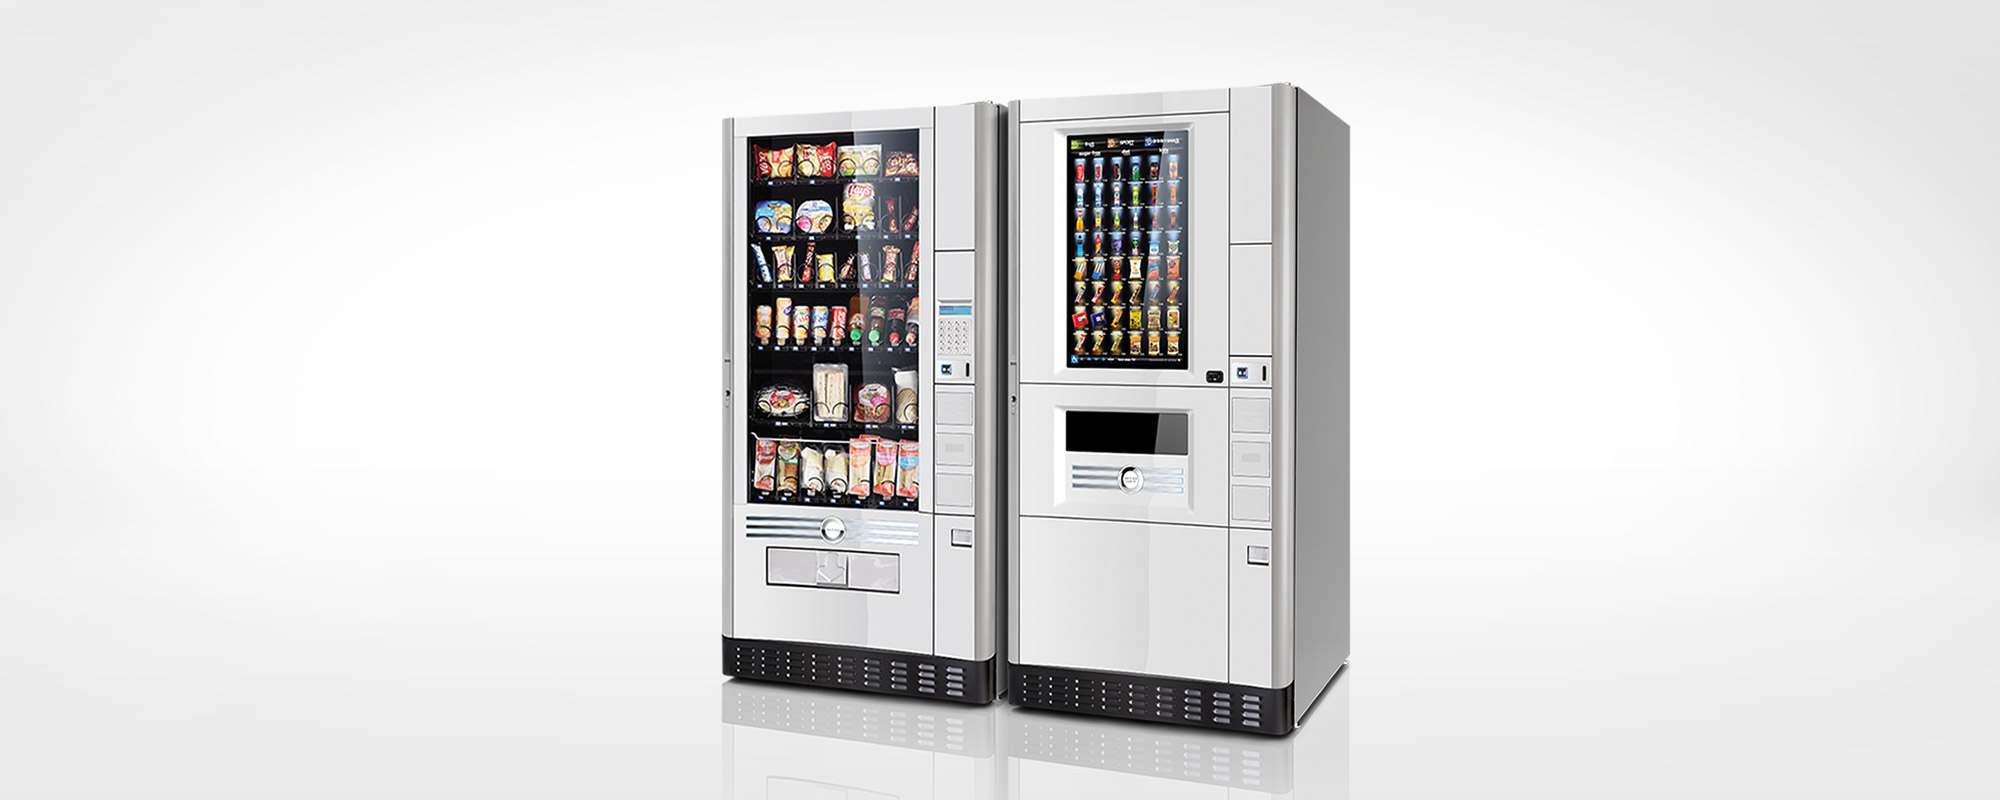 vending freestanding snack&food - luce x